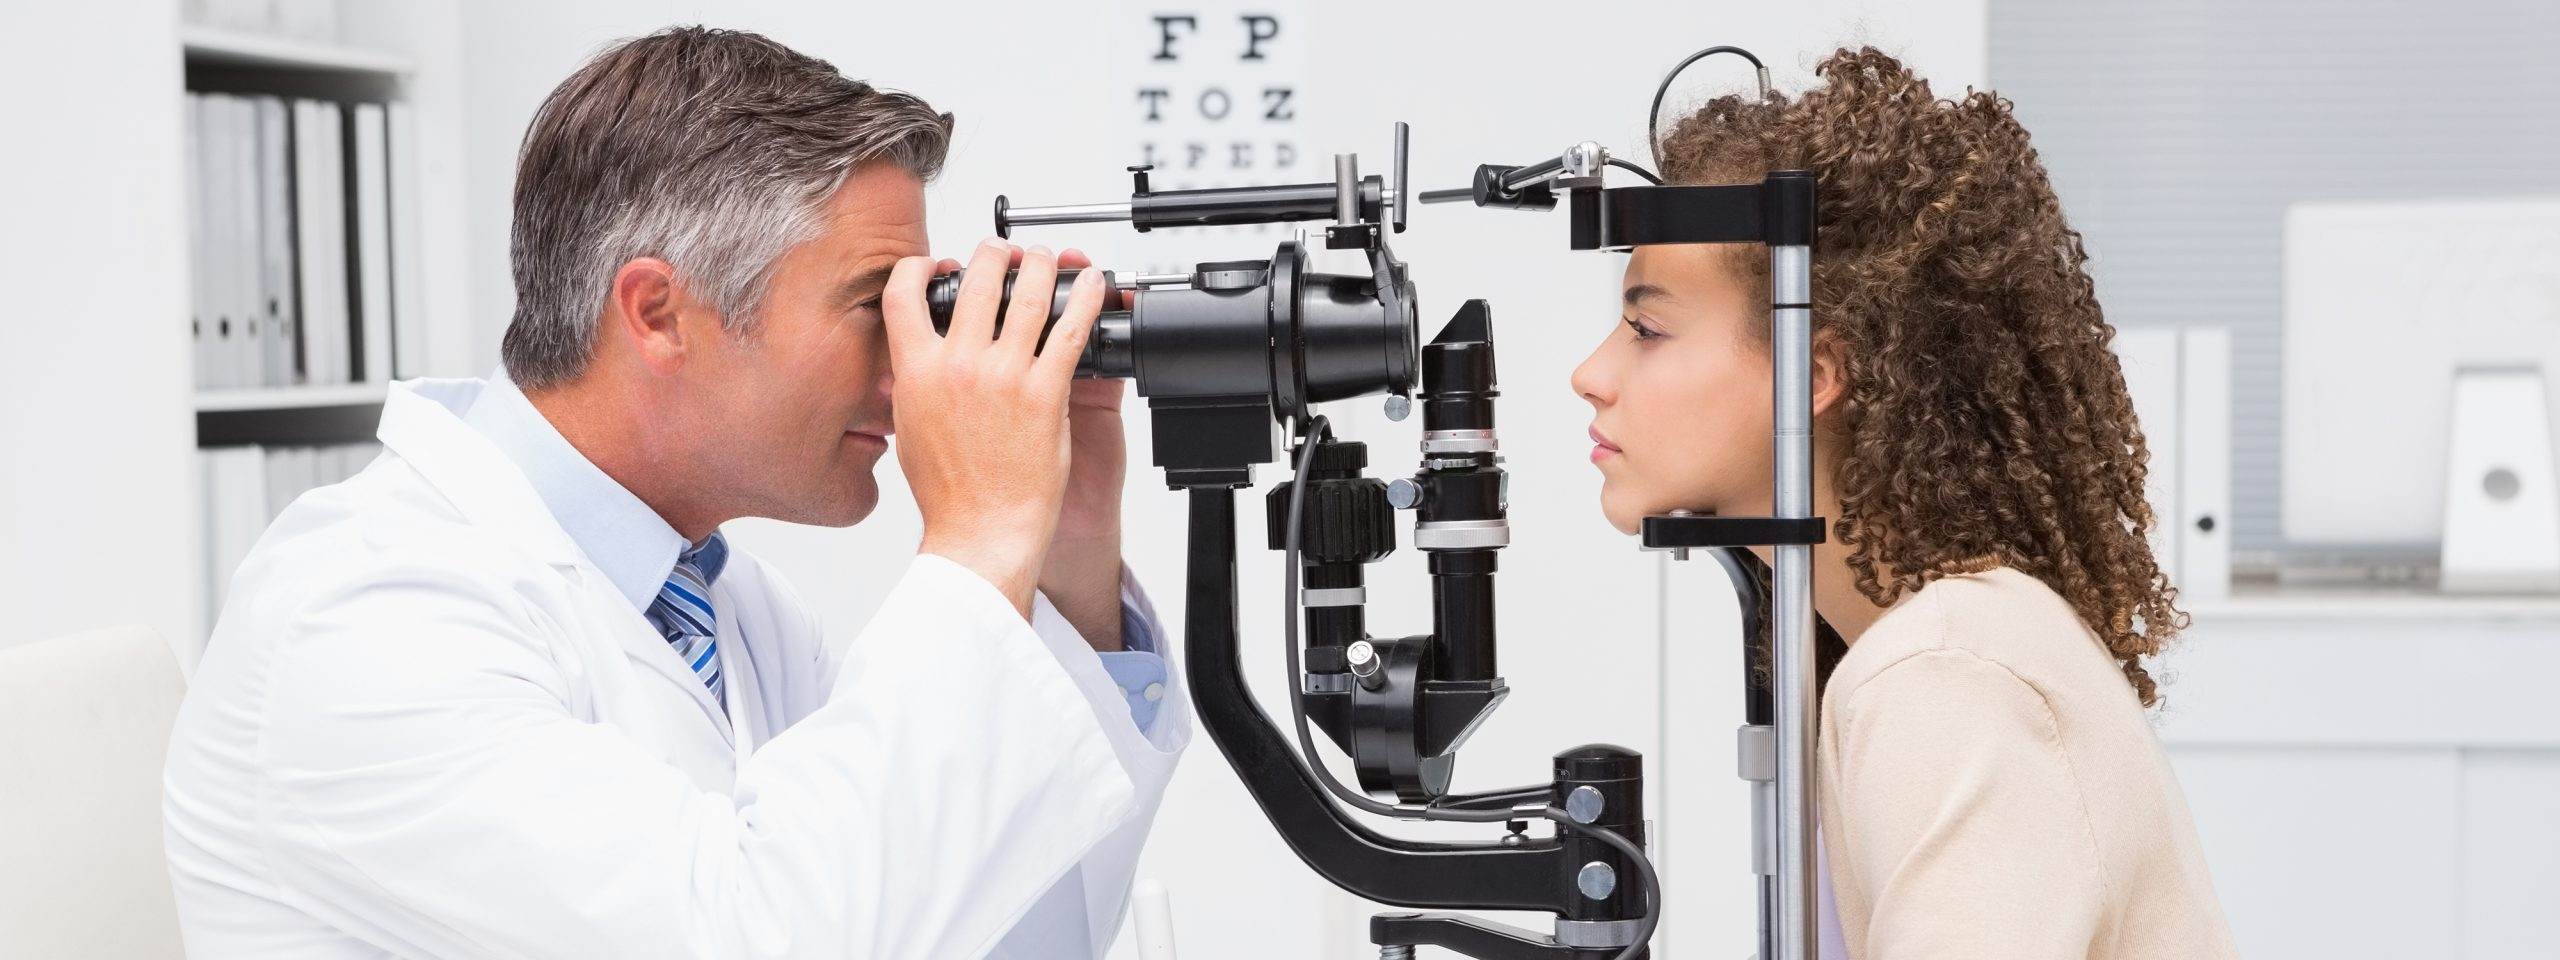 Male optometrist gives eye exam to female patient.